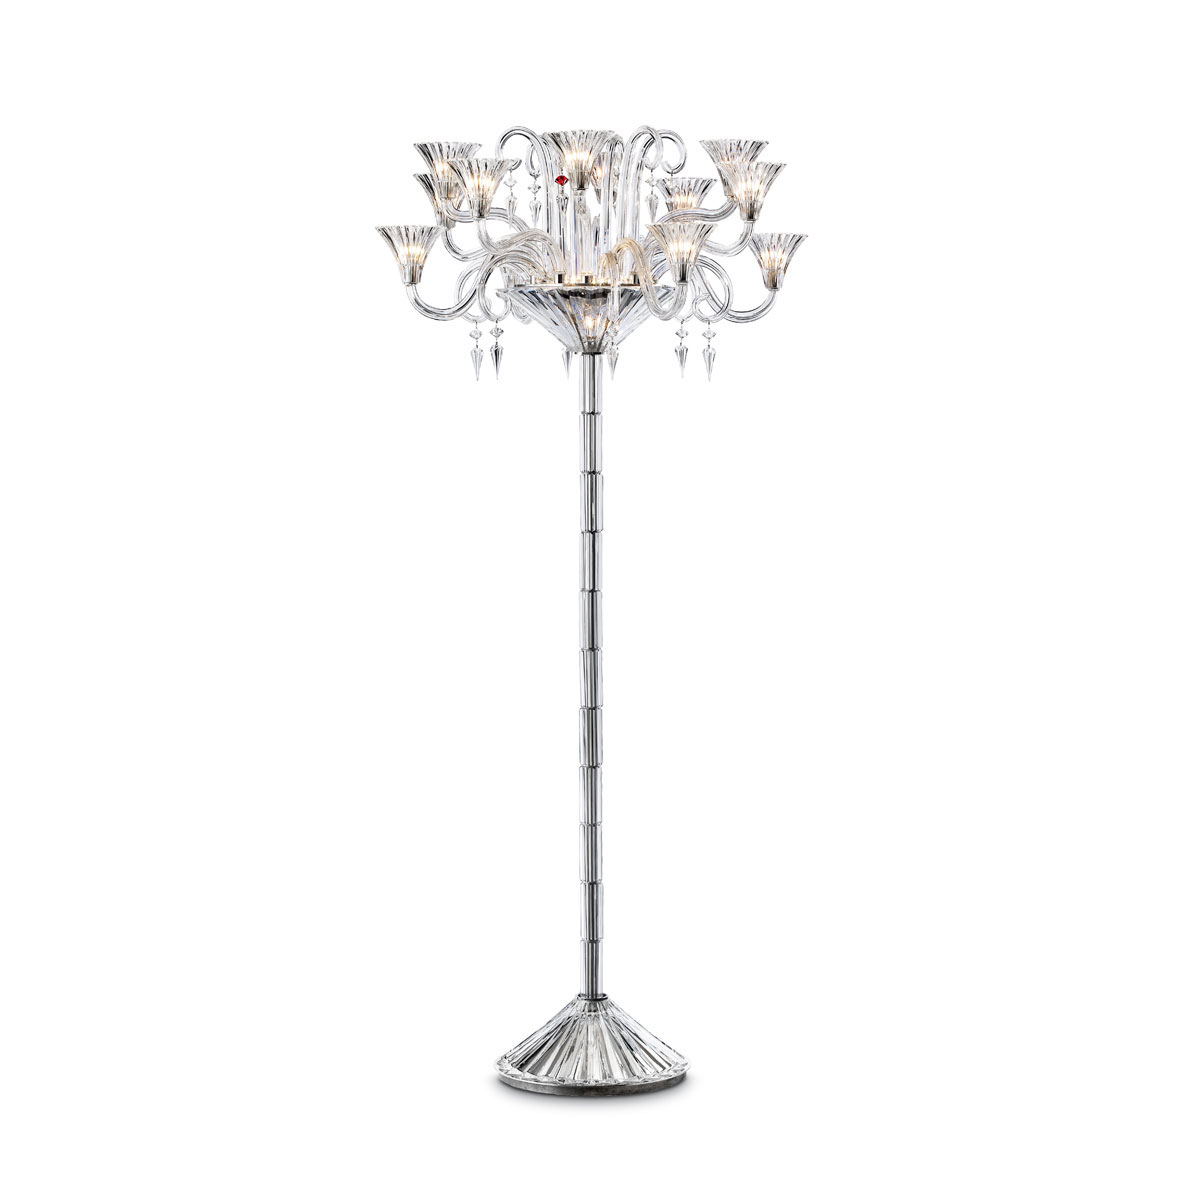 Baccarat Crystal, Mille Nuits 12-Light Floor Crystal Lamp Crystal Candelabra